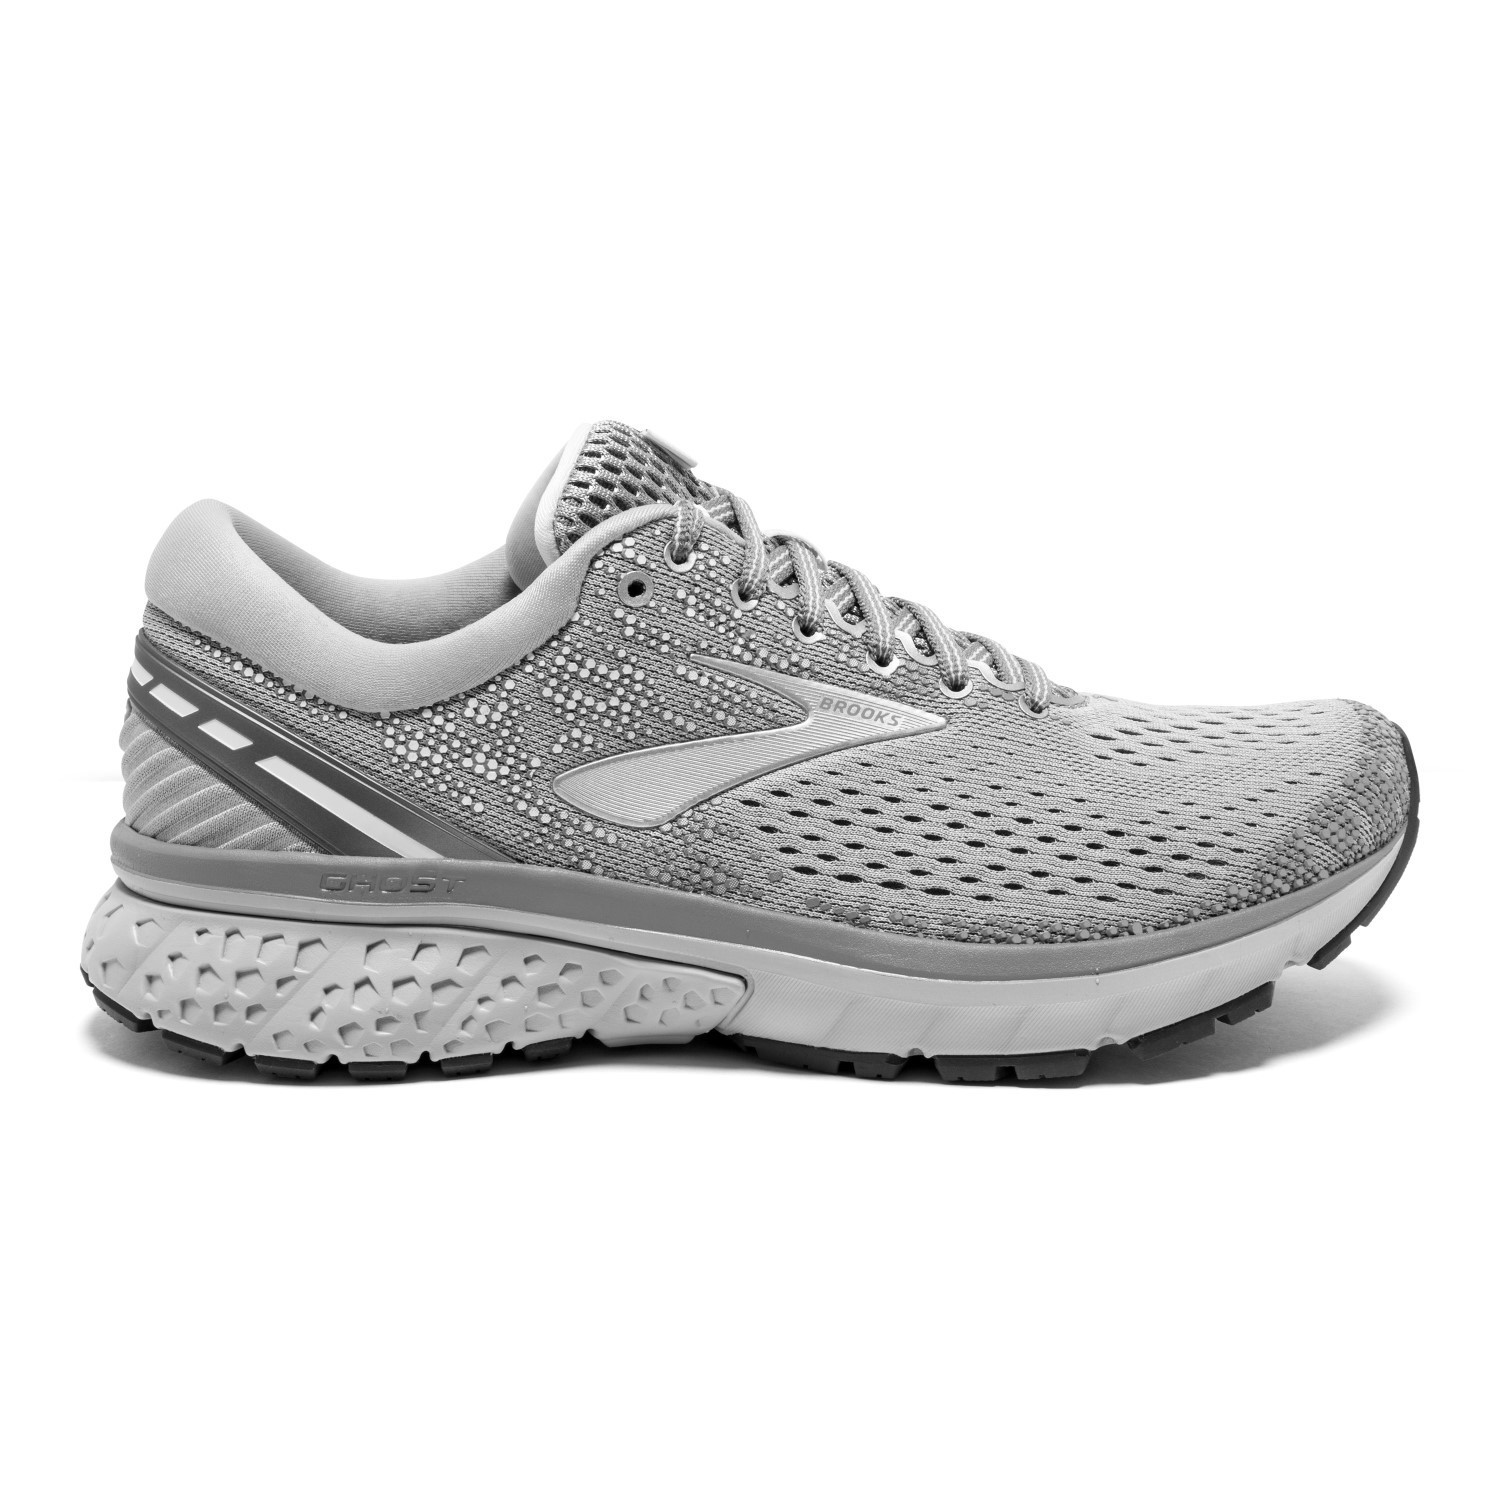 7f89e3fbc71b7 Brooks Ghost 11 - Womens Running Shoes - Silver Alloy Grey